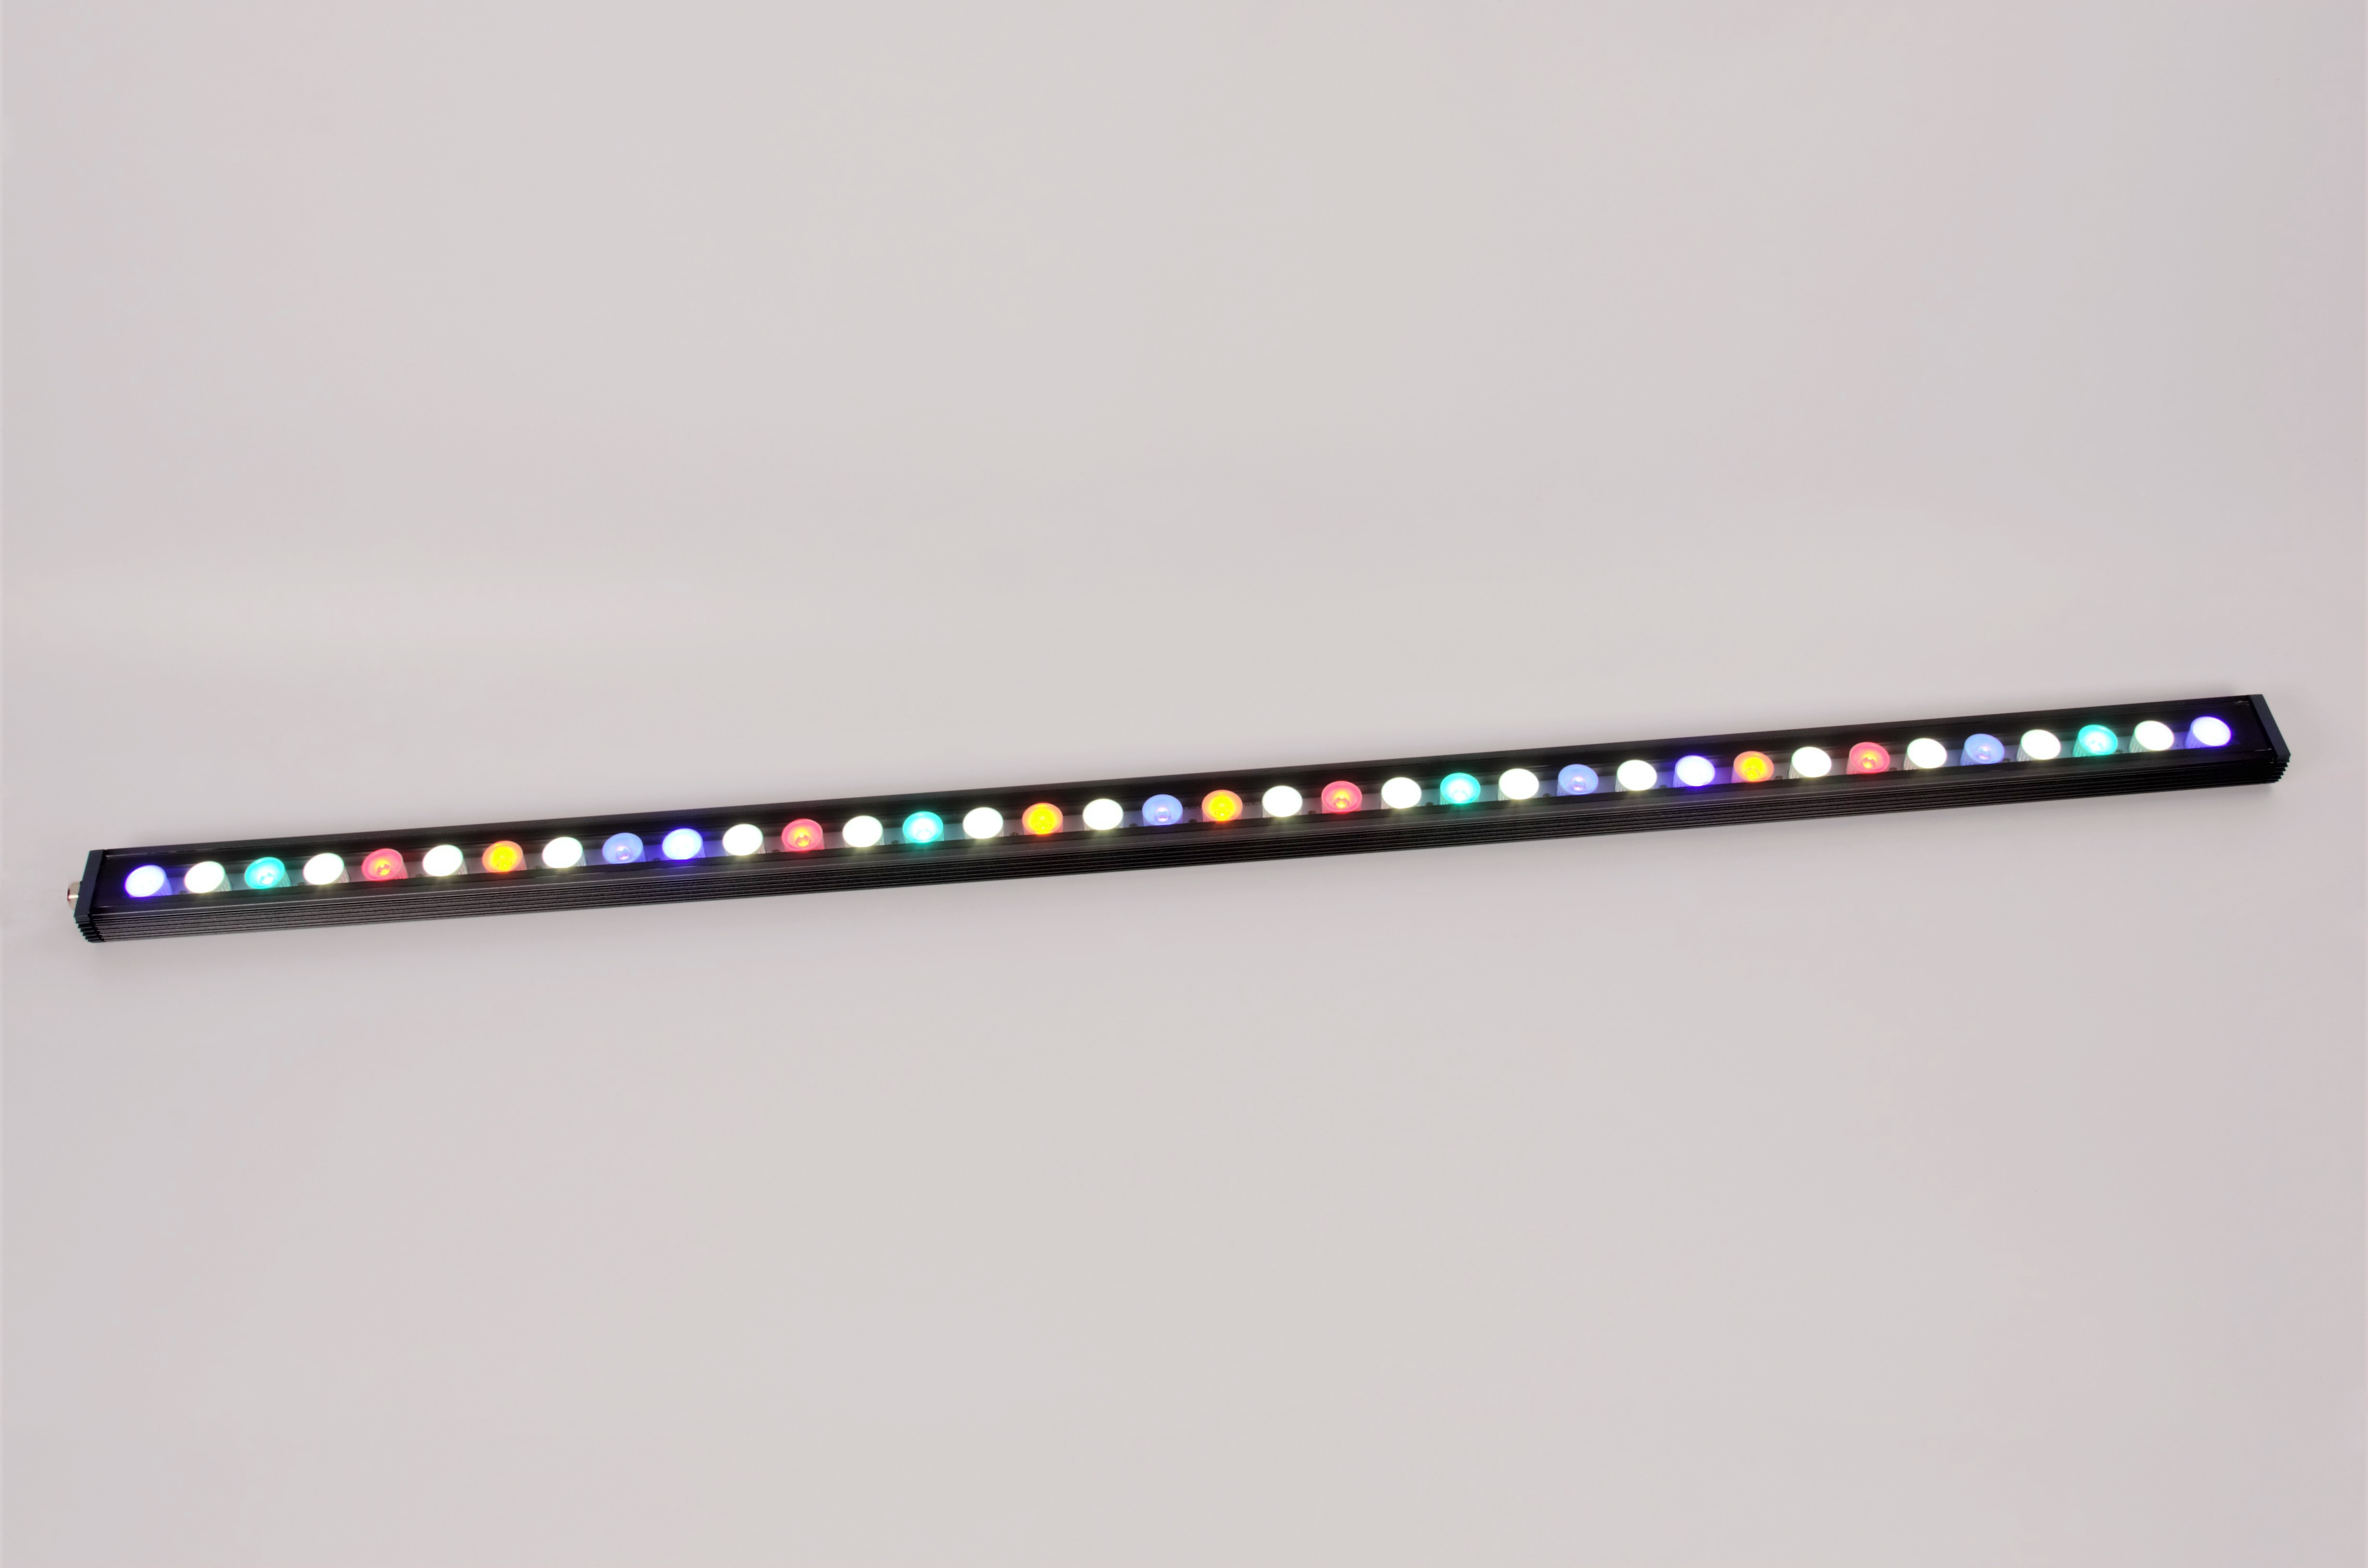 Air tawar Bar strip LED lighting